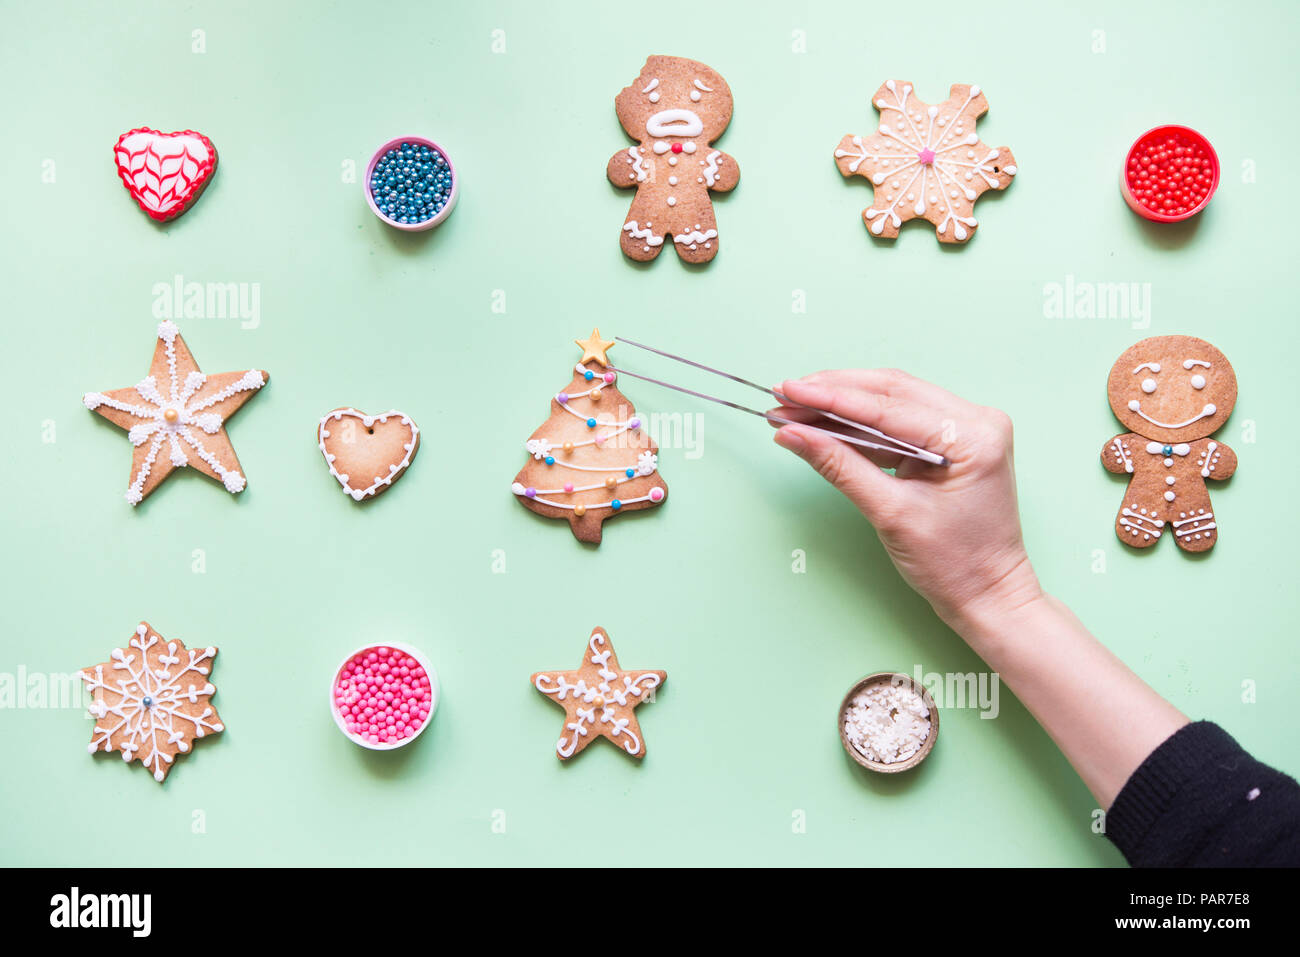 Woman's hand decorating Gingerbread cookies - Stock Image